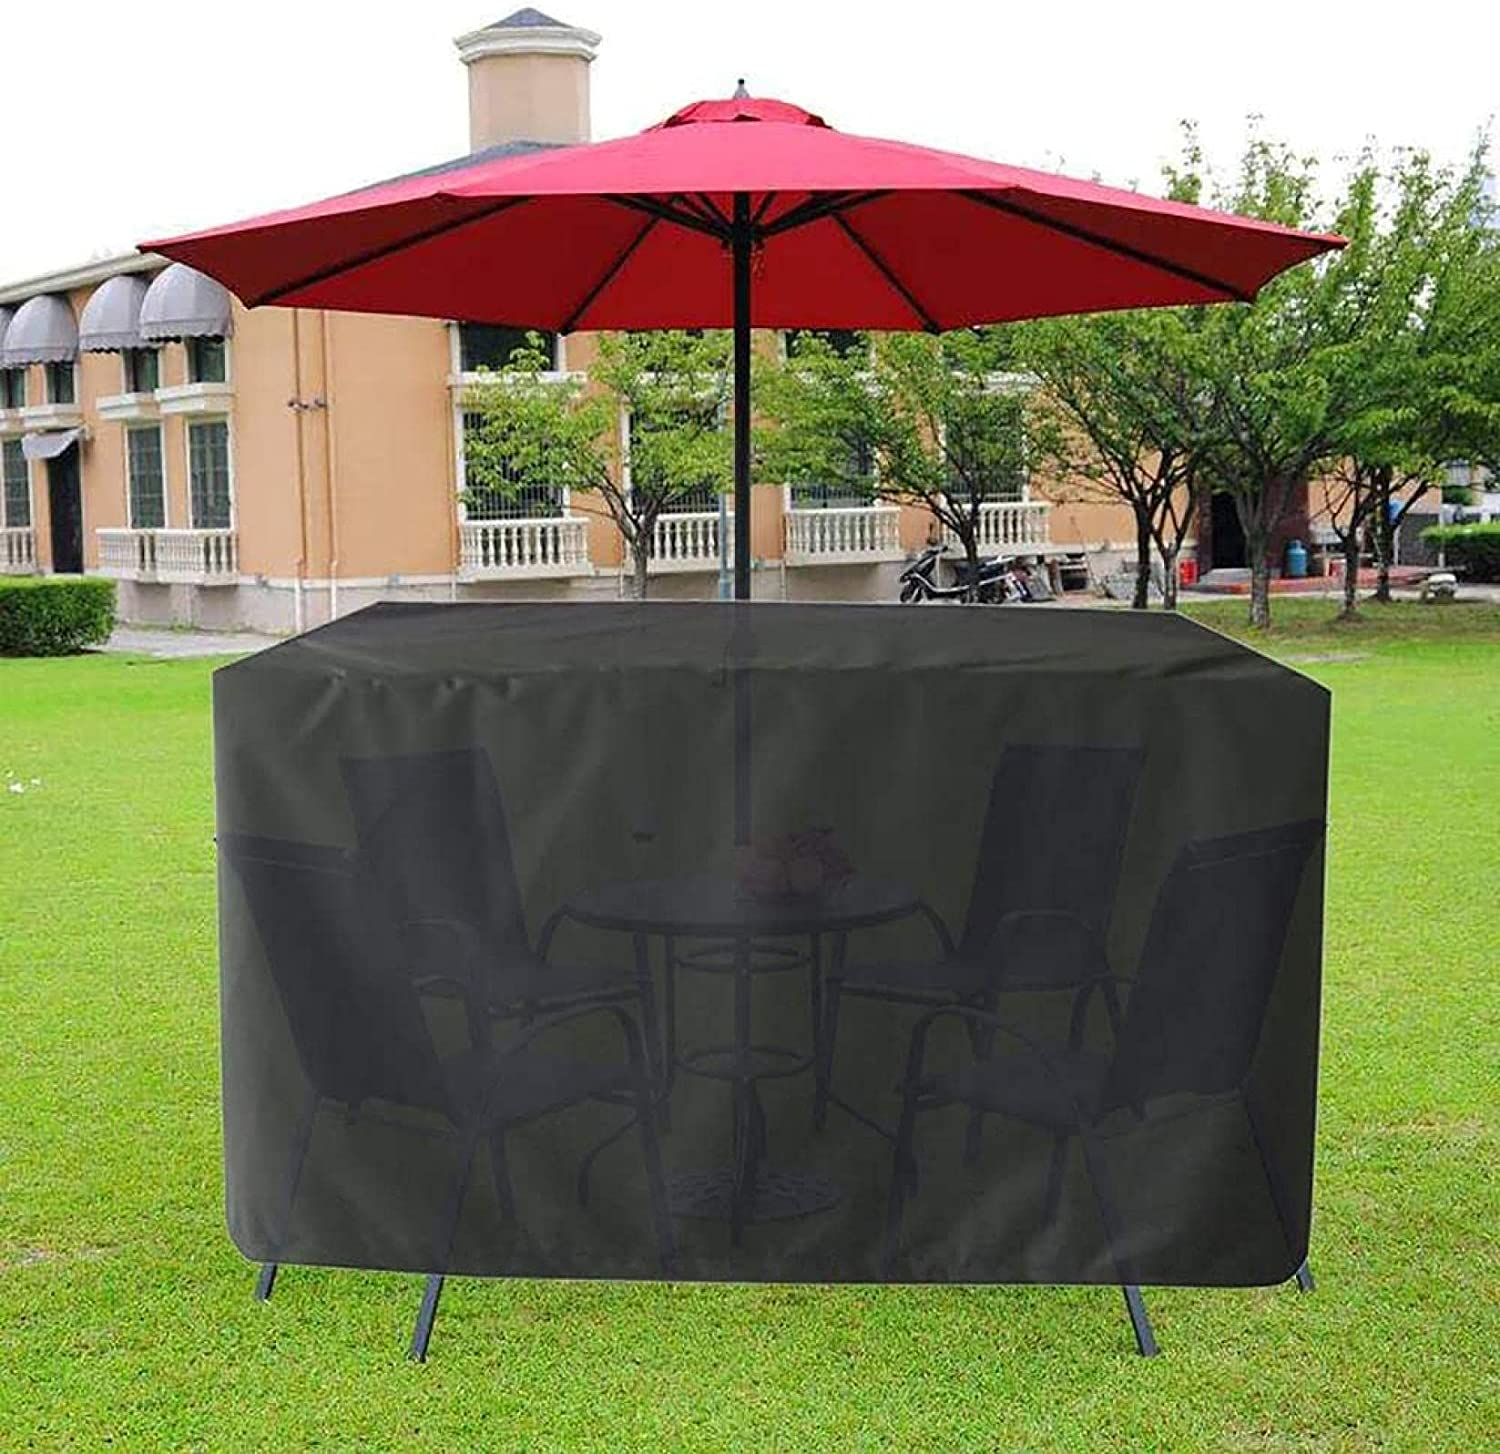 Patio Memphis Mall Furniture Covers Portland Mall Waterproof Dust-Proof Rectangul Outdoor